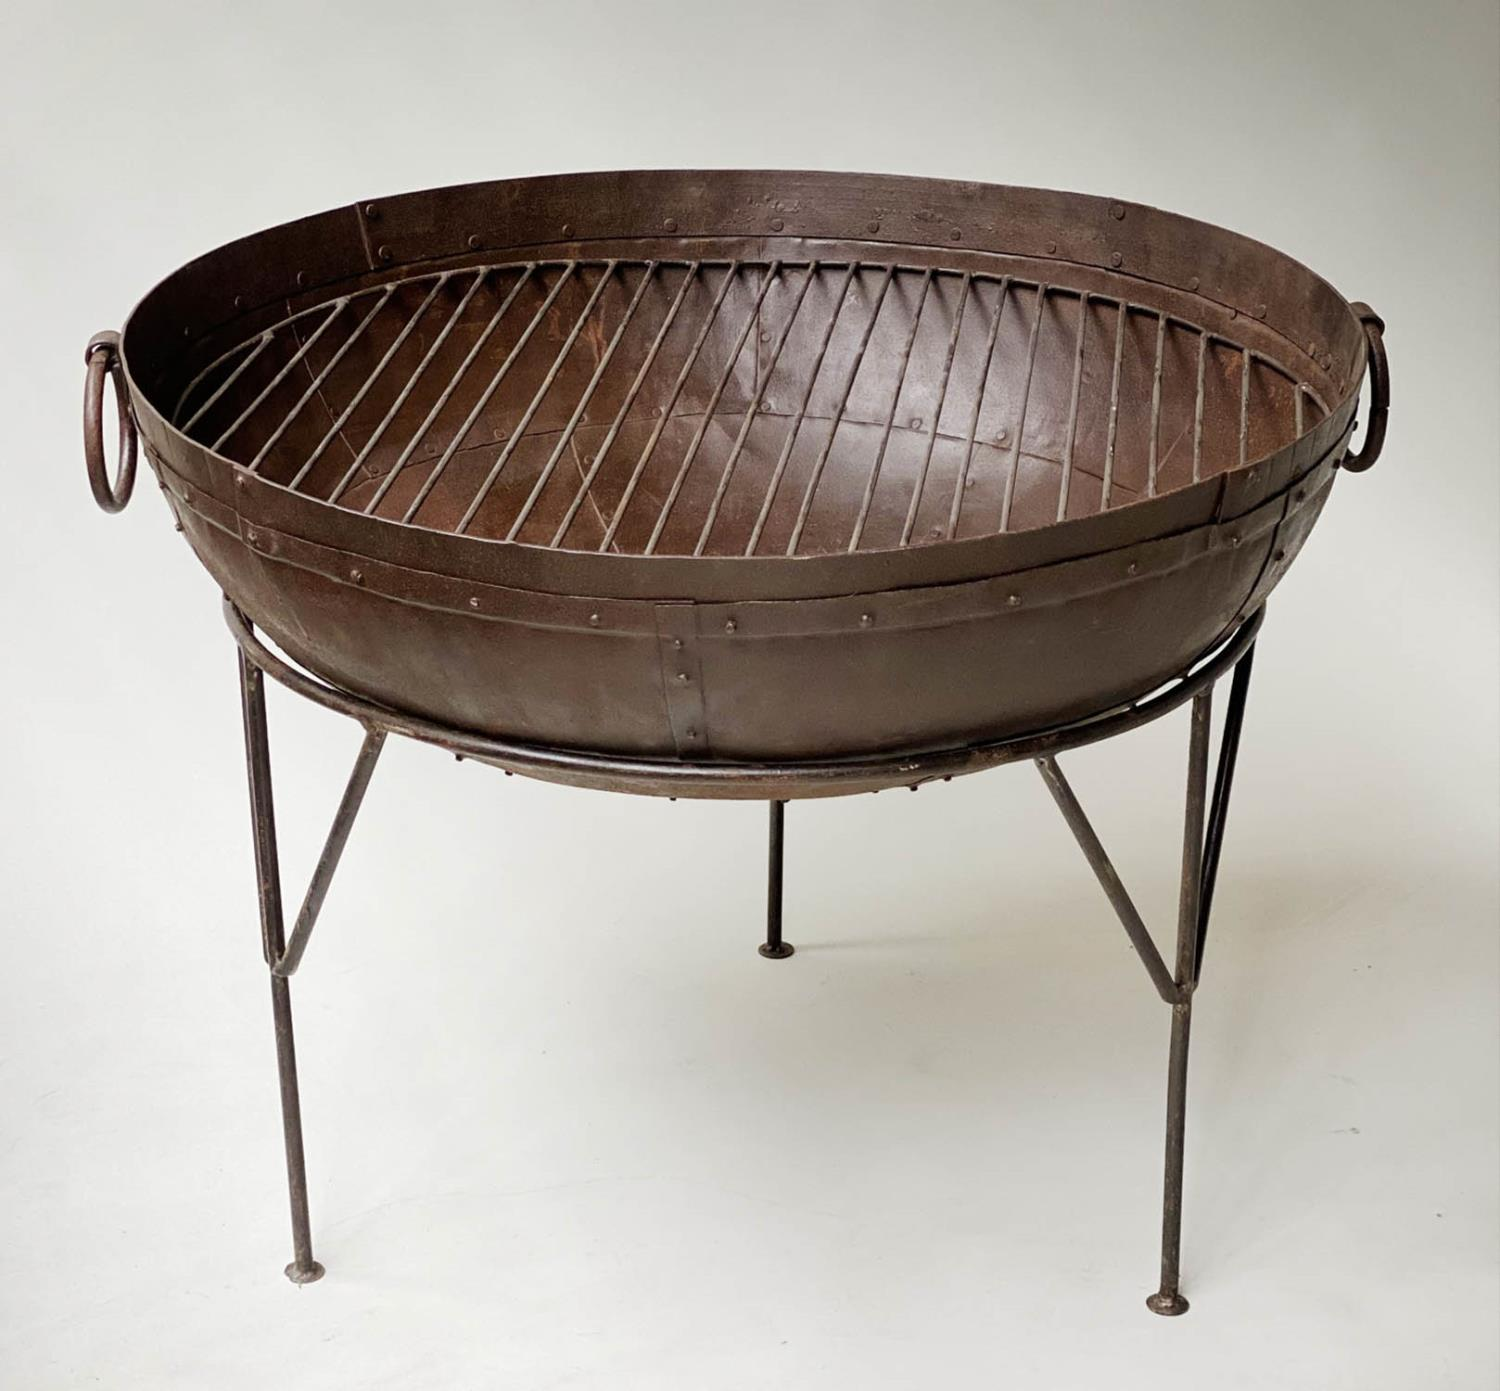 FIREPIT, riveted bowl form with grill and wrought iron stand, 84cm x 65cm H. - Image 4 of 5